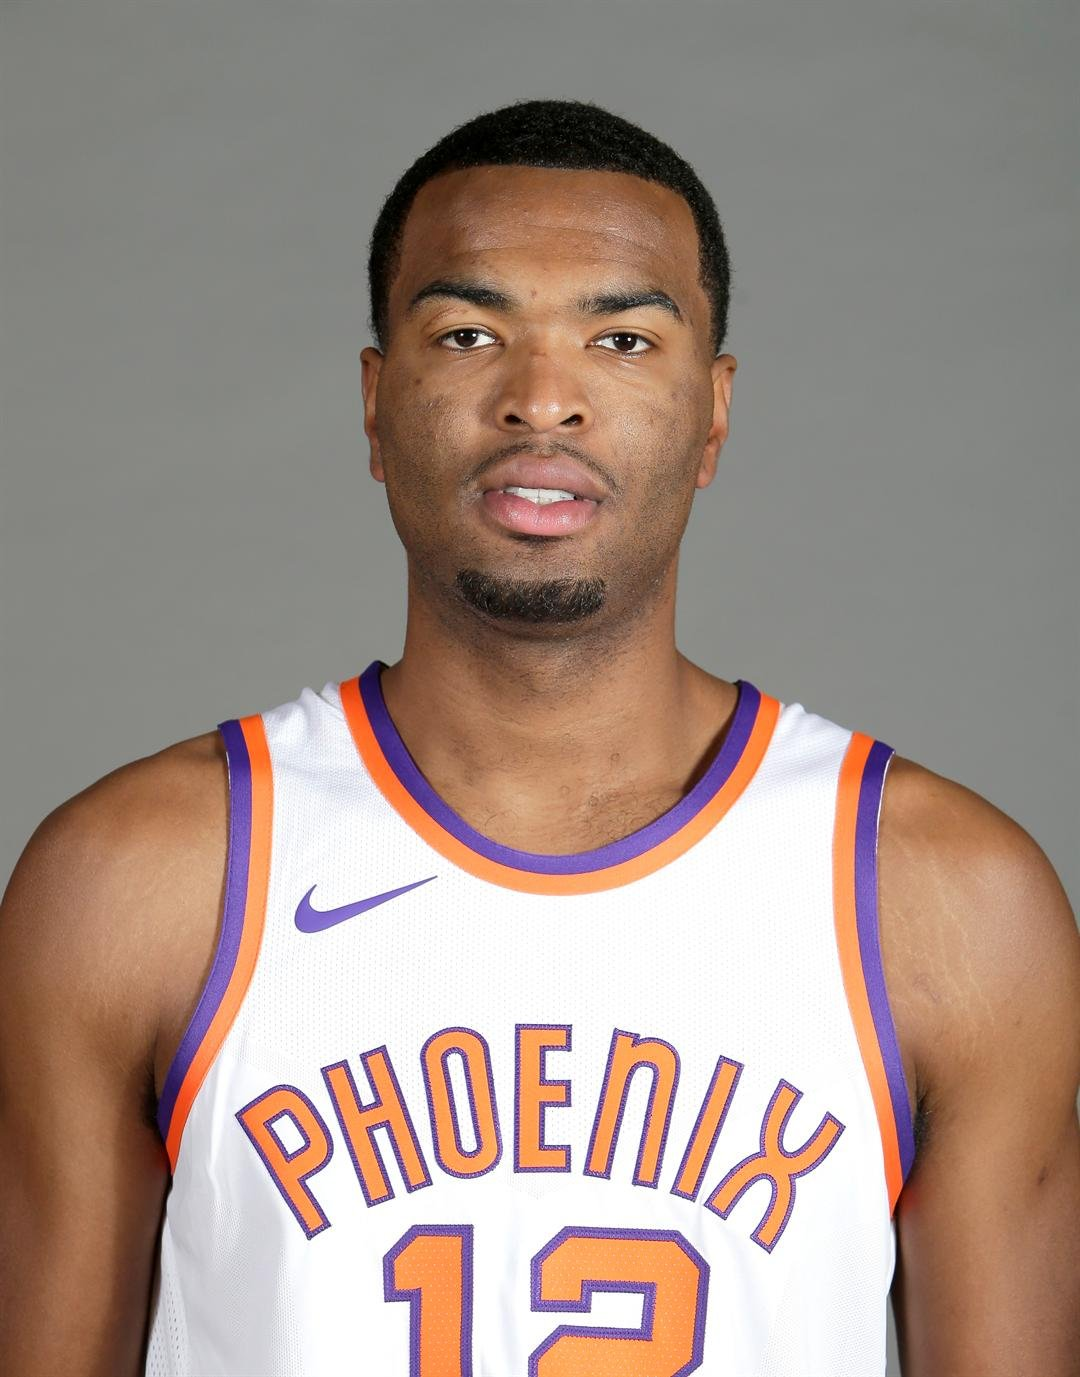 Phoenix Suns TJ Warren poses during the NBA basketball team media day Monday, Sept. 25, 2017 in Phoenix. (Source: AP Photo/Rick Scuteri)